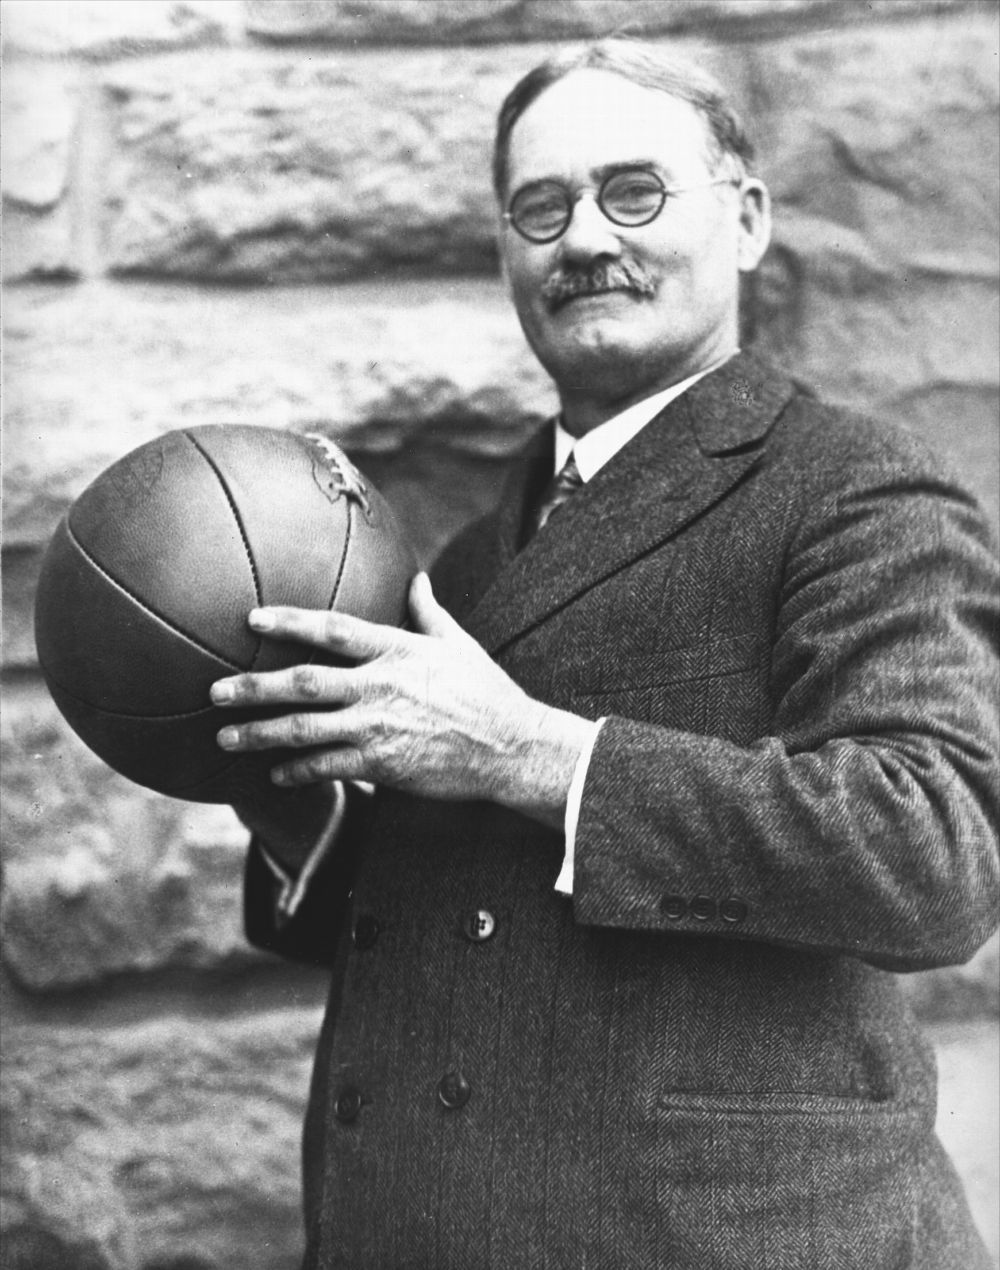 In 1891, while working as a physical education teacher at the YMCA International Training School in Springfield, Mass., Naismith was asked to develop a game that would not take up much room, was not too rough, and at the same time, could be played indoors. (Photo Courtesy of Kansas Historical Society/kansasmemory.org)